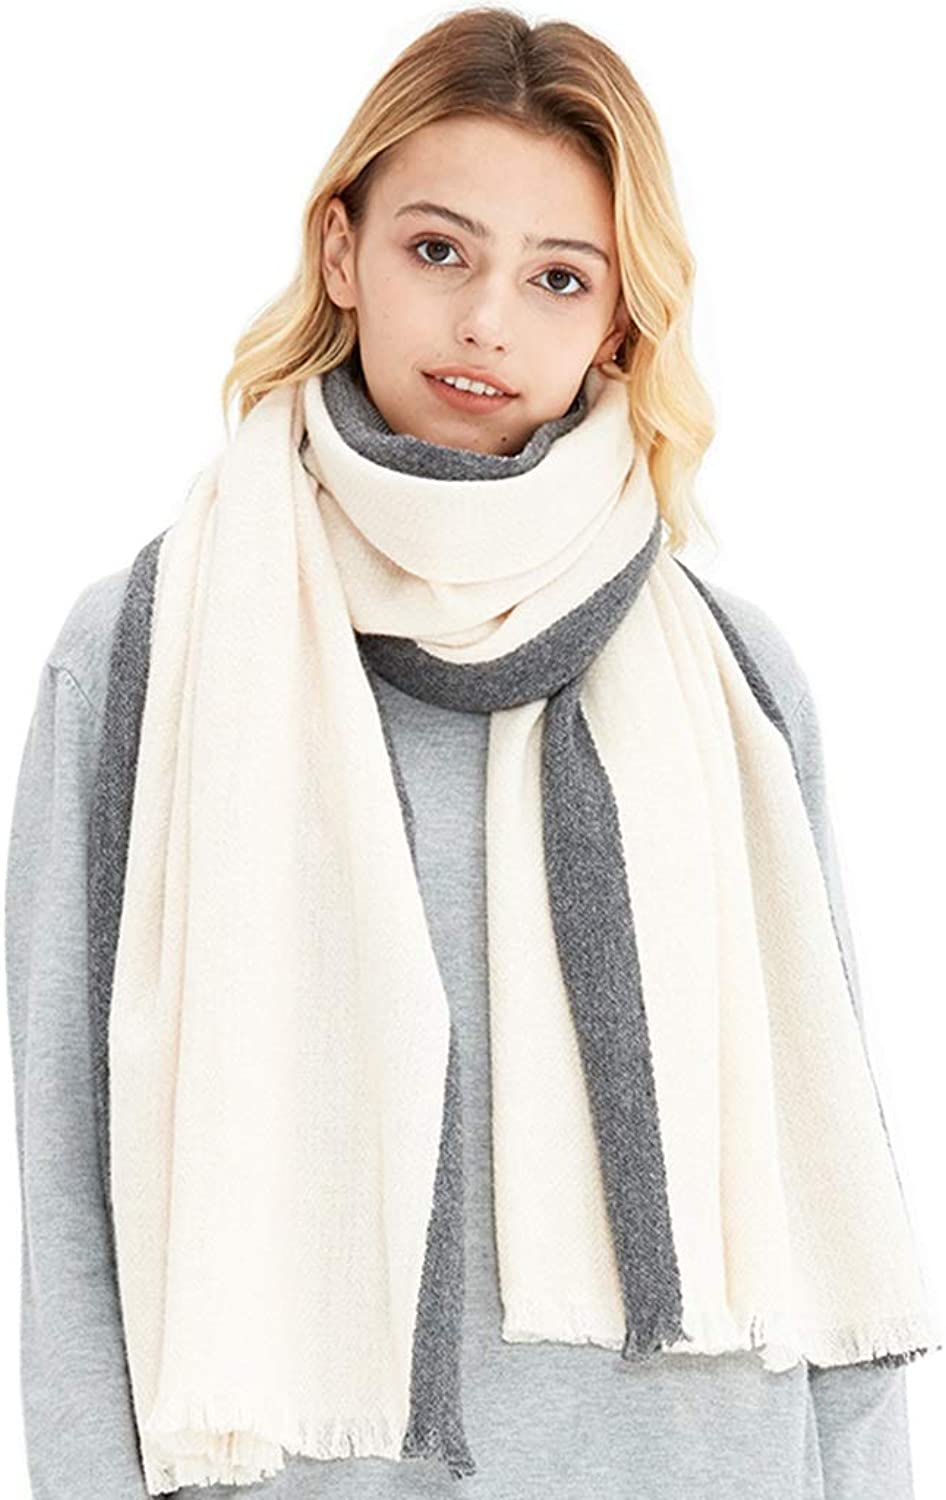 Stoles Scarf Wool Shawl Winter Comfortable Warm Scarf Ladies Dualuse Thickening Lamb Hair Pure Cashmere Soft Fashion Shawl (color   White, Size   200  65 cm)